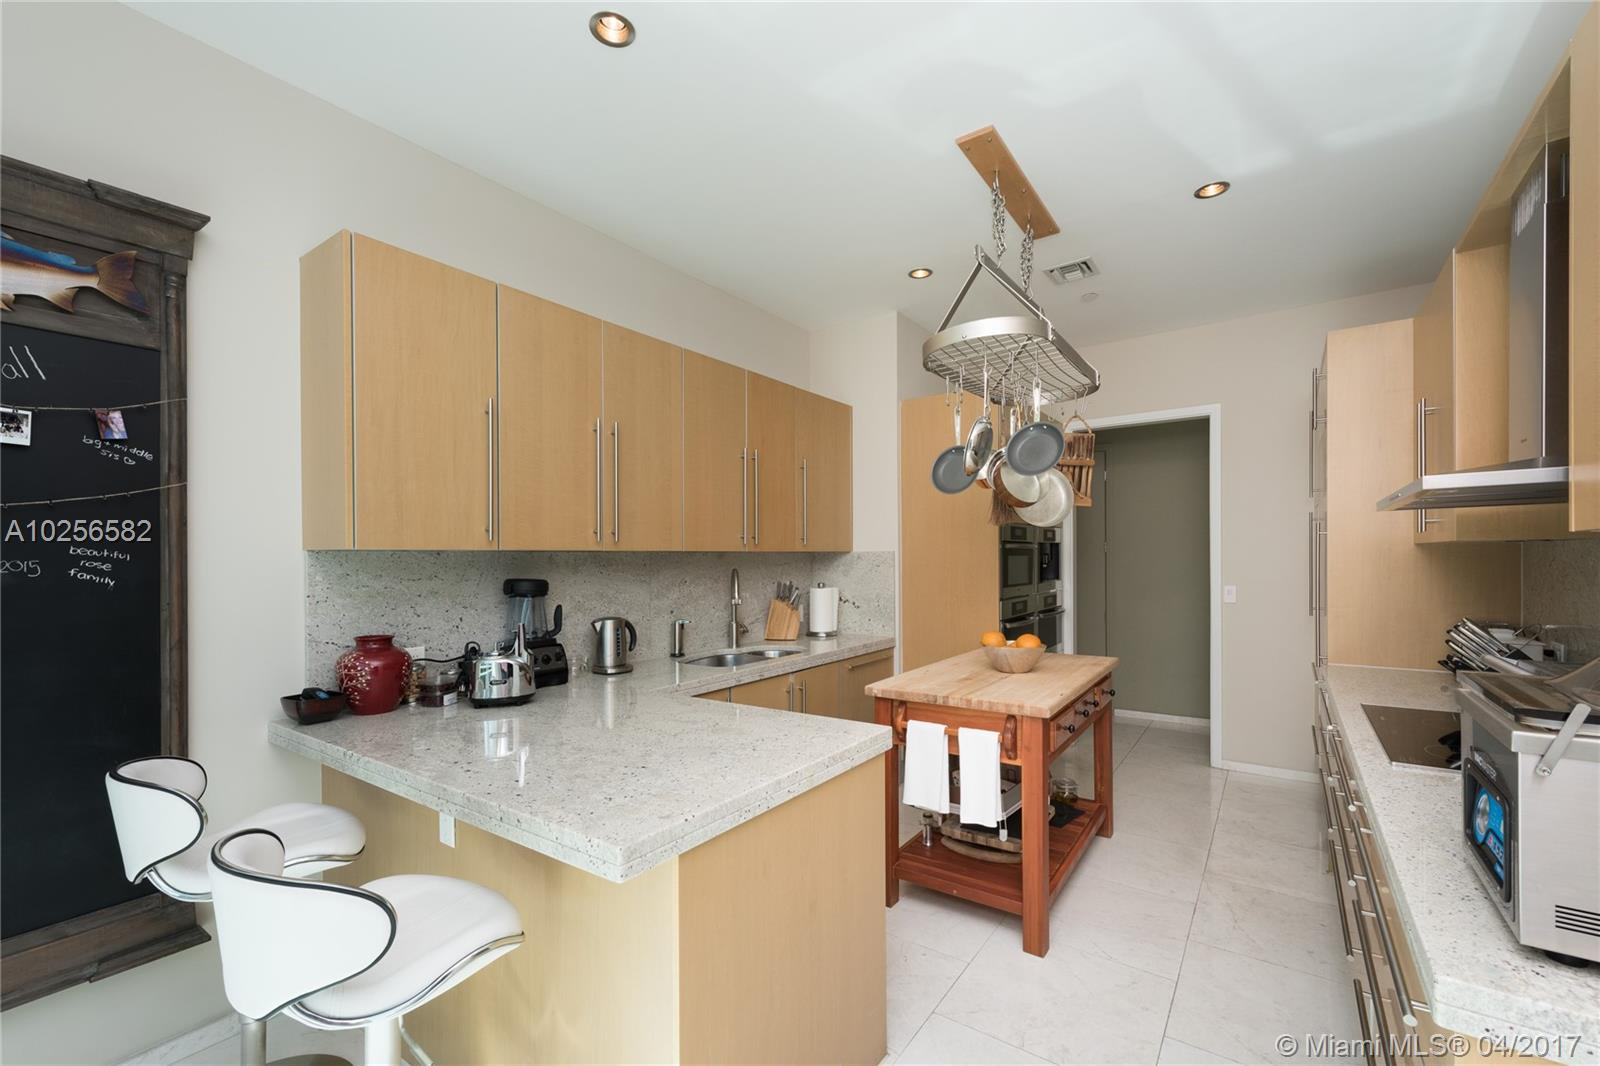 900 Brickell Key Blvd # 4/503, Miami, FL 33131